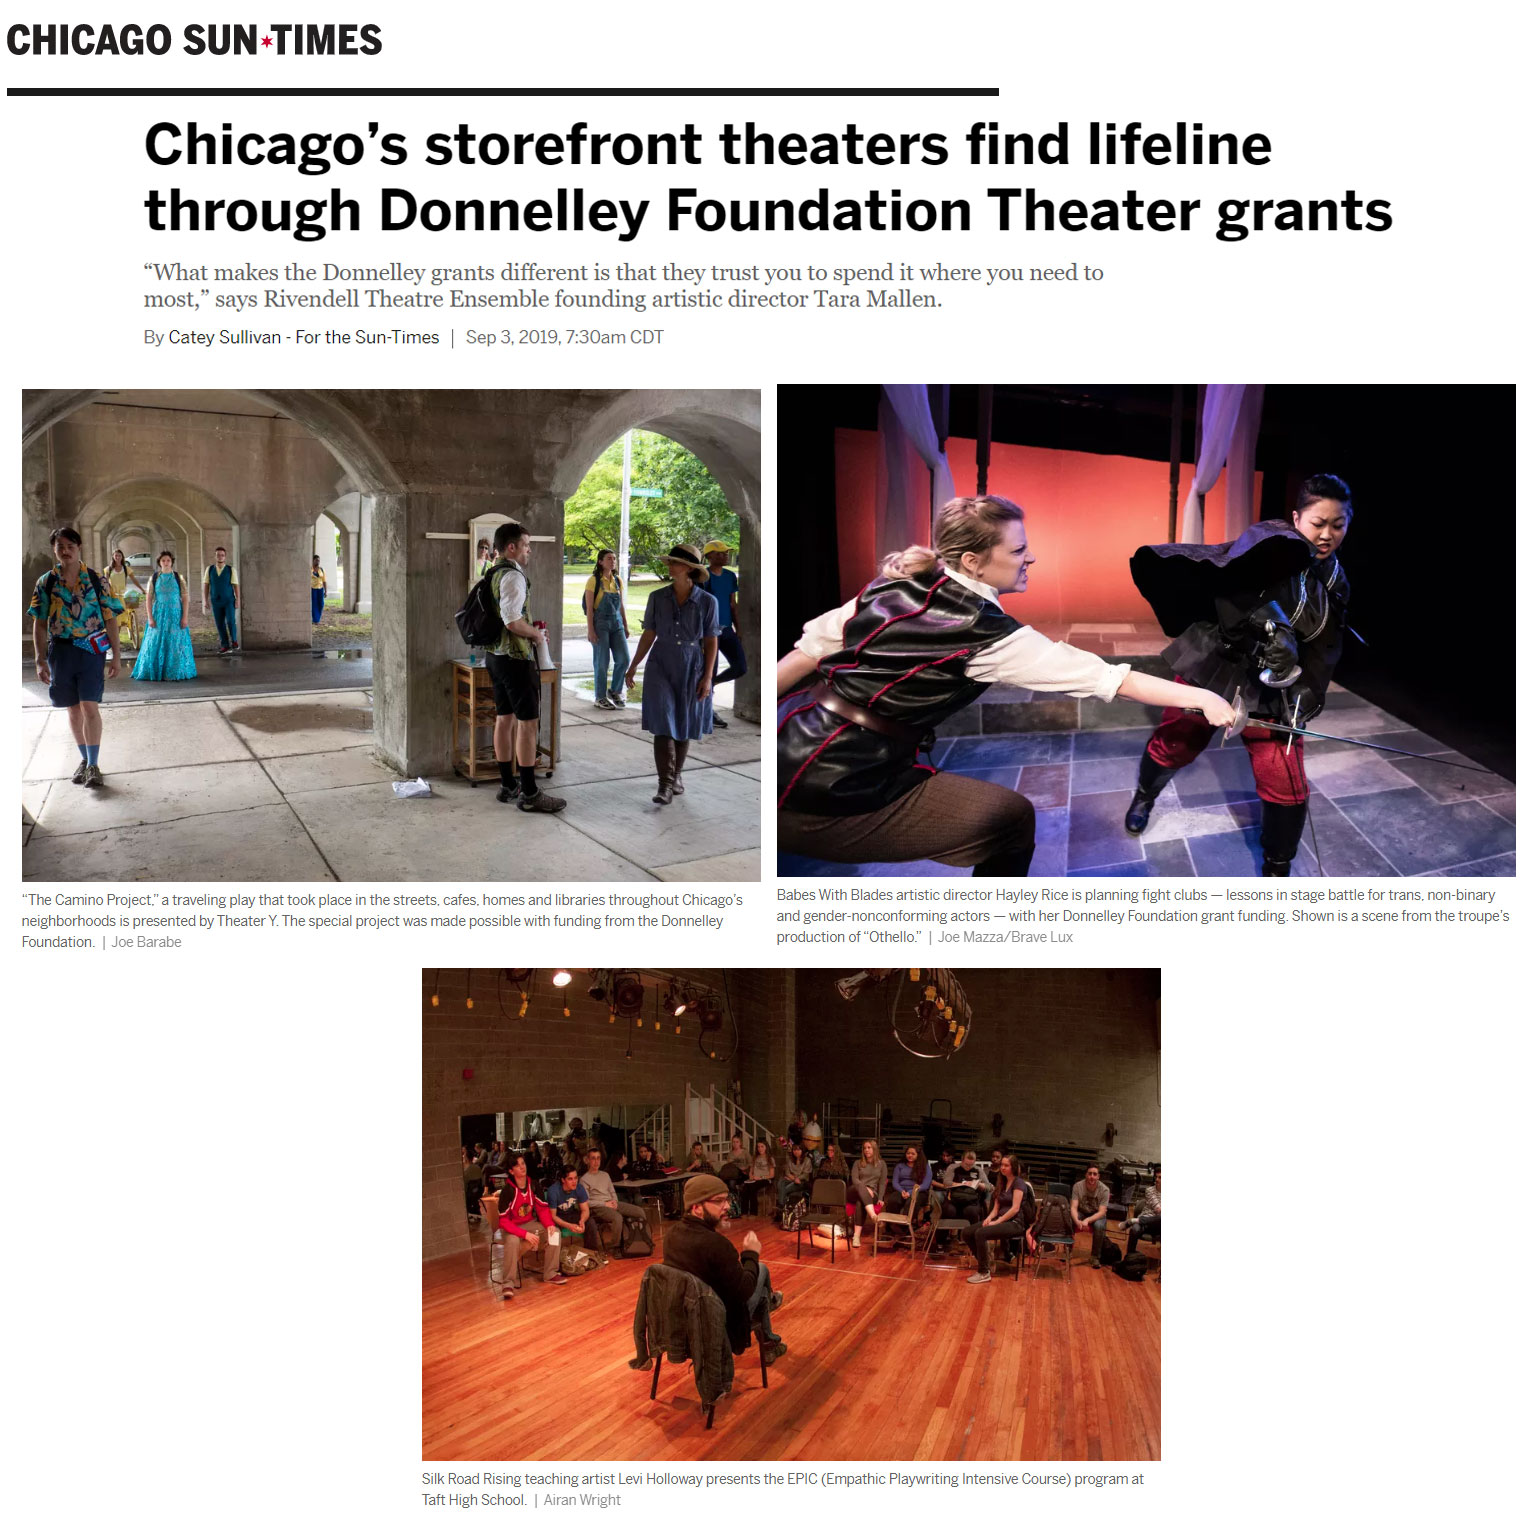 Photos of Theater Y, Babes With Blades, Silk Road Rising in Chicago Sun-Times article